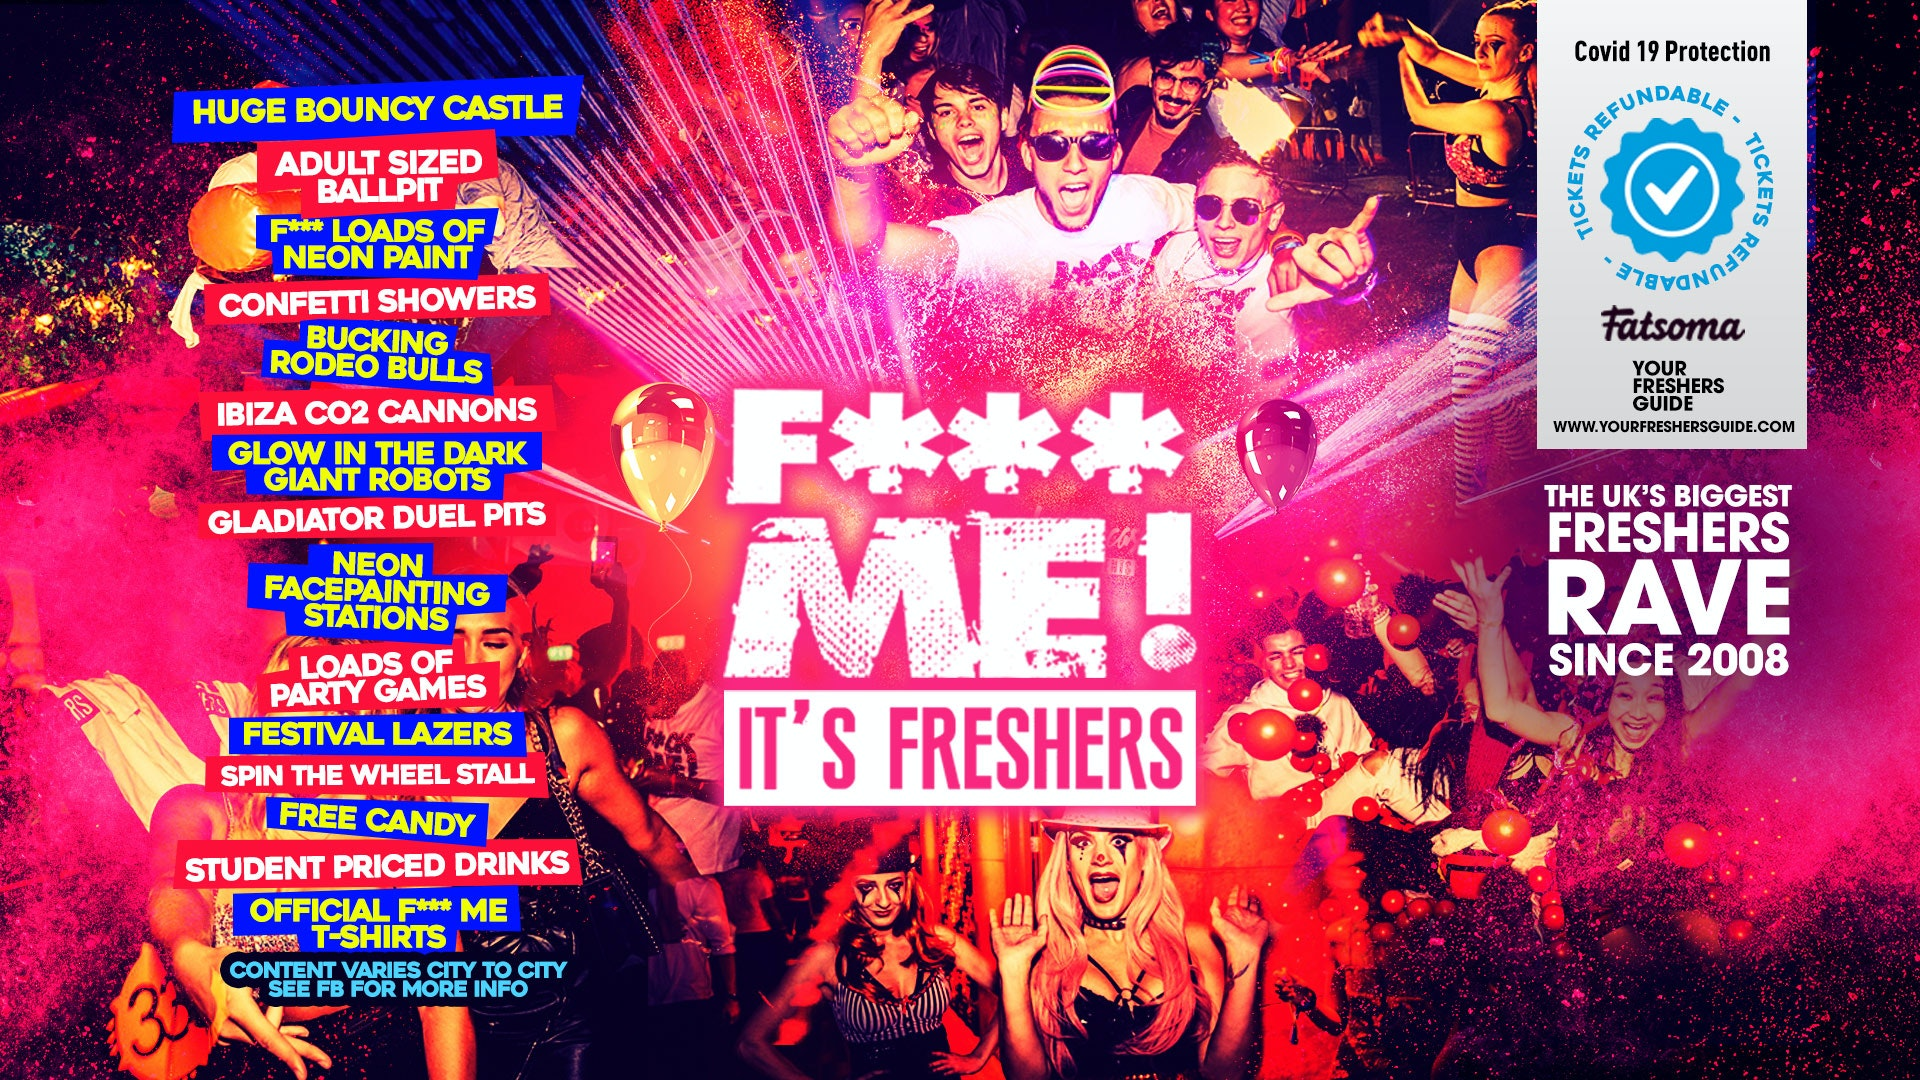 FME It's Freshers | Brighton Freshers 2021 – Returners Tickets!